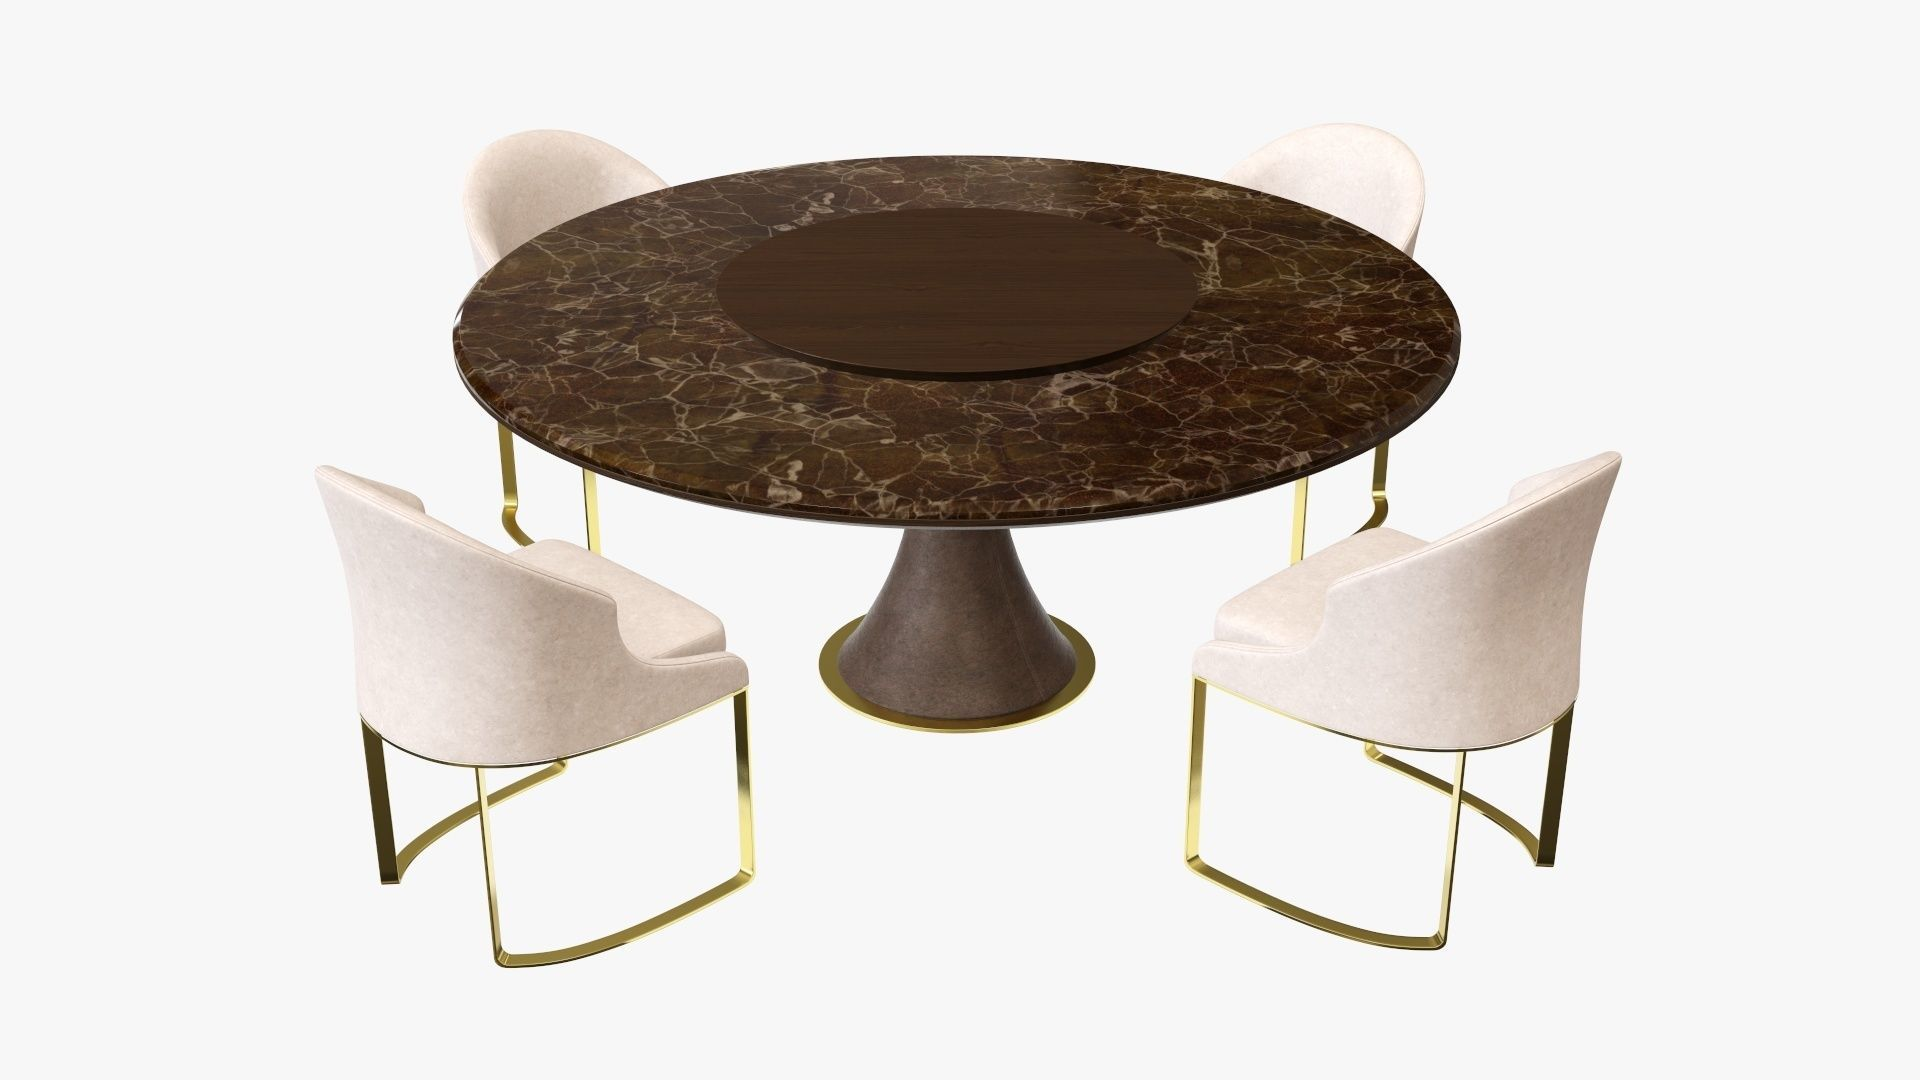 Dining table with marble top and modern chairs with gold legs